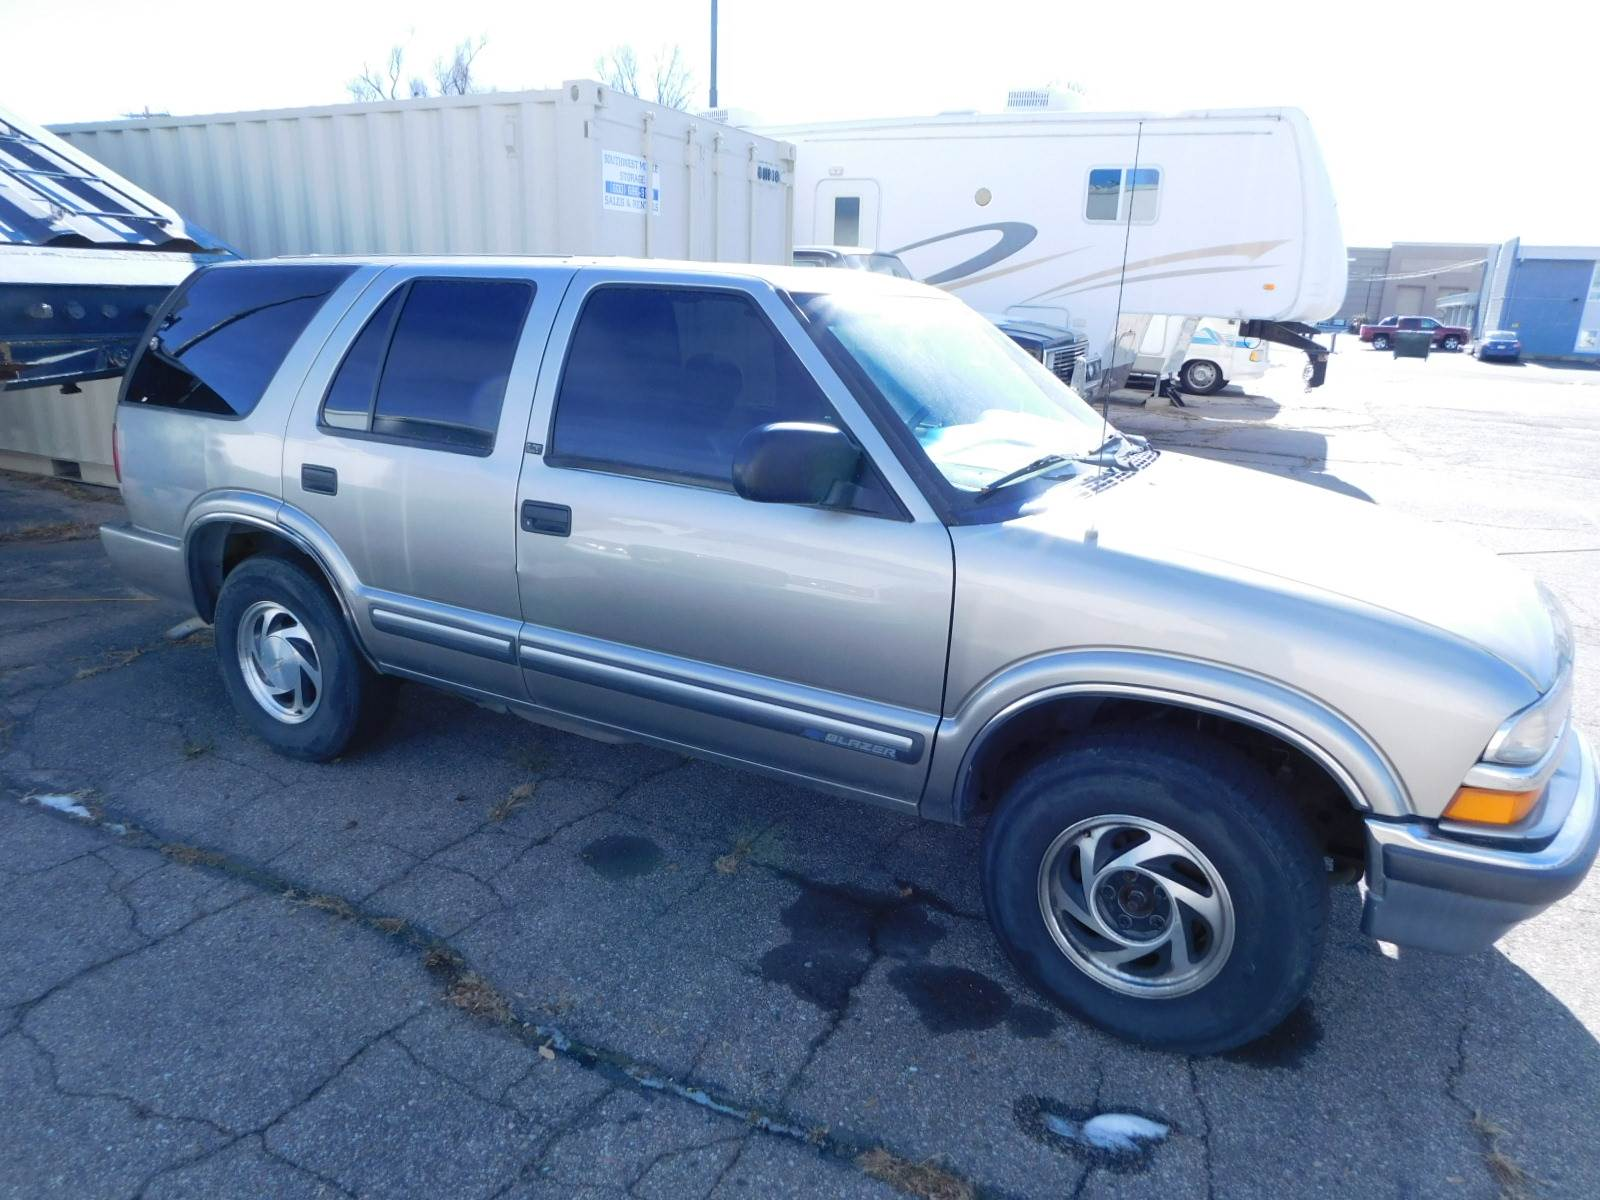 2000 Chevrolet 4X4 Blazer 4 Door in Loveland, Colorado